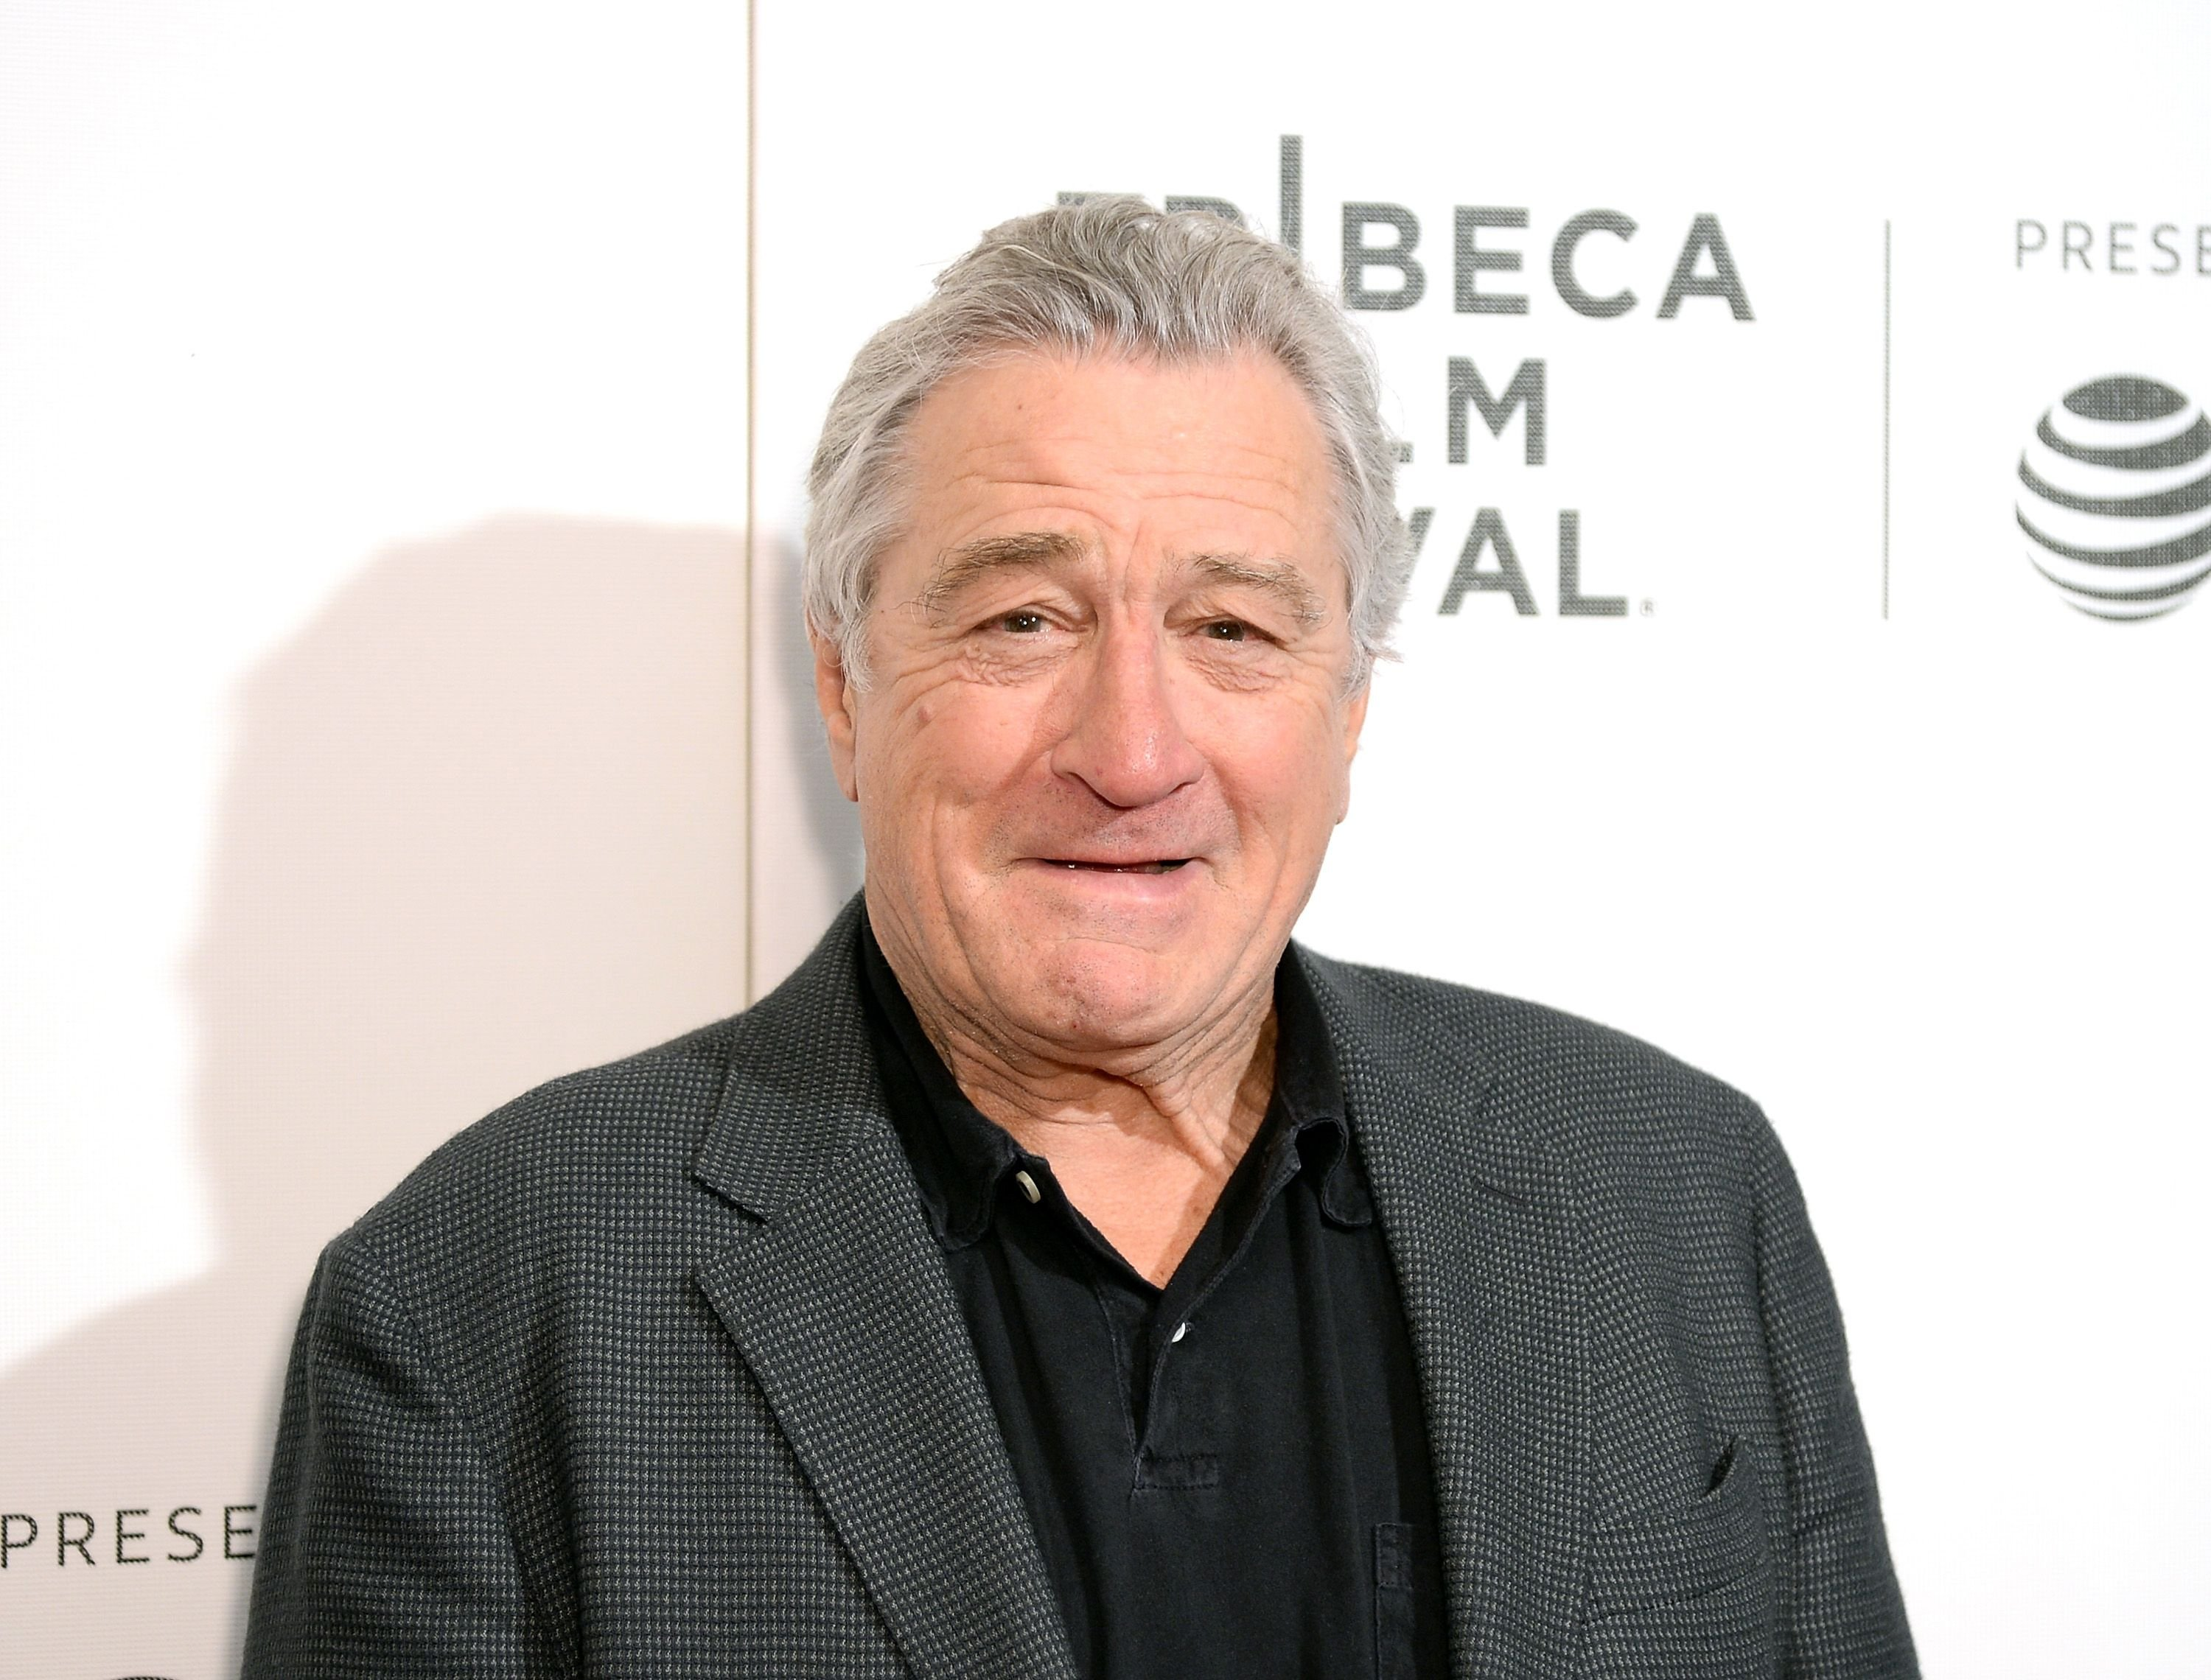 """Robert De Niro at the premiere of """"Women Walks Ahead"""" at the Tribeca Film Festival on April 25, 2018, in New York City 